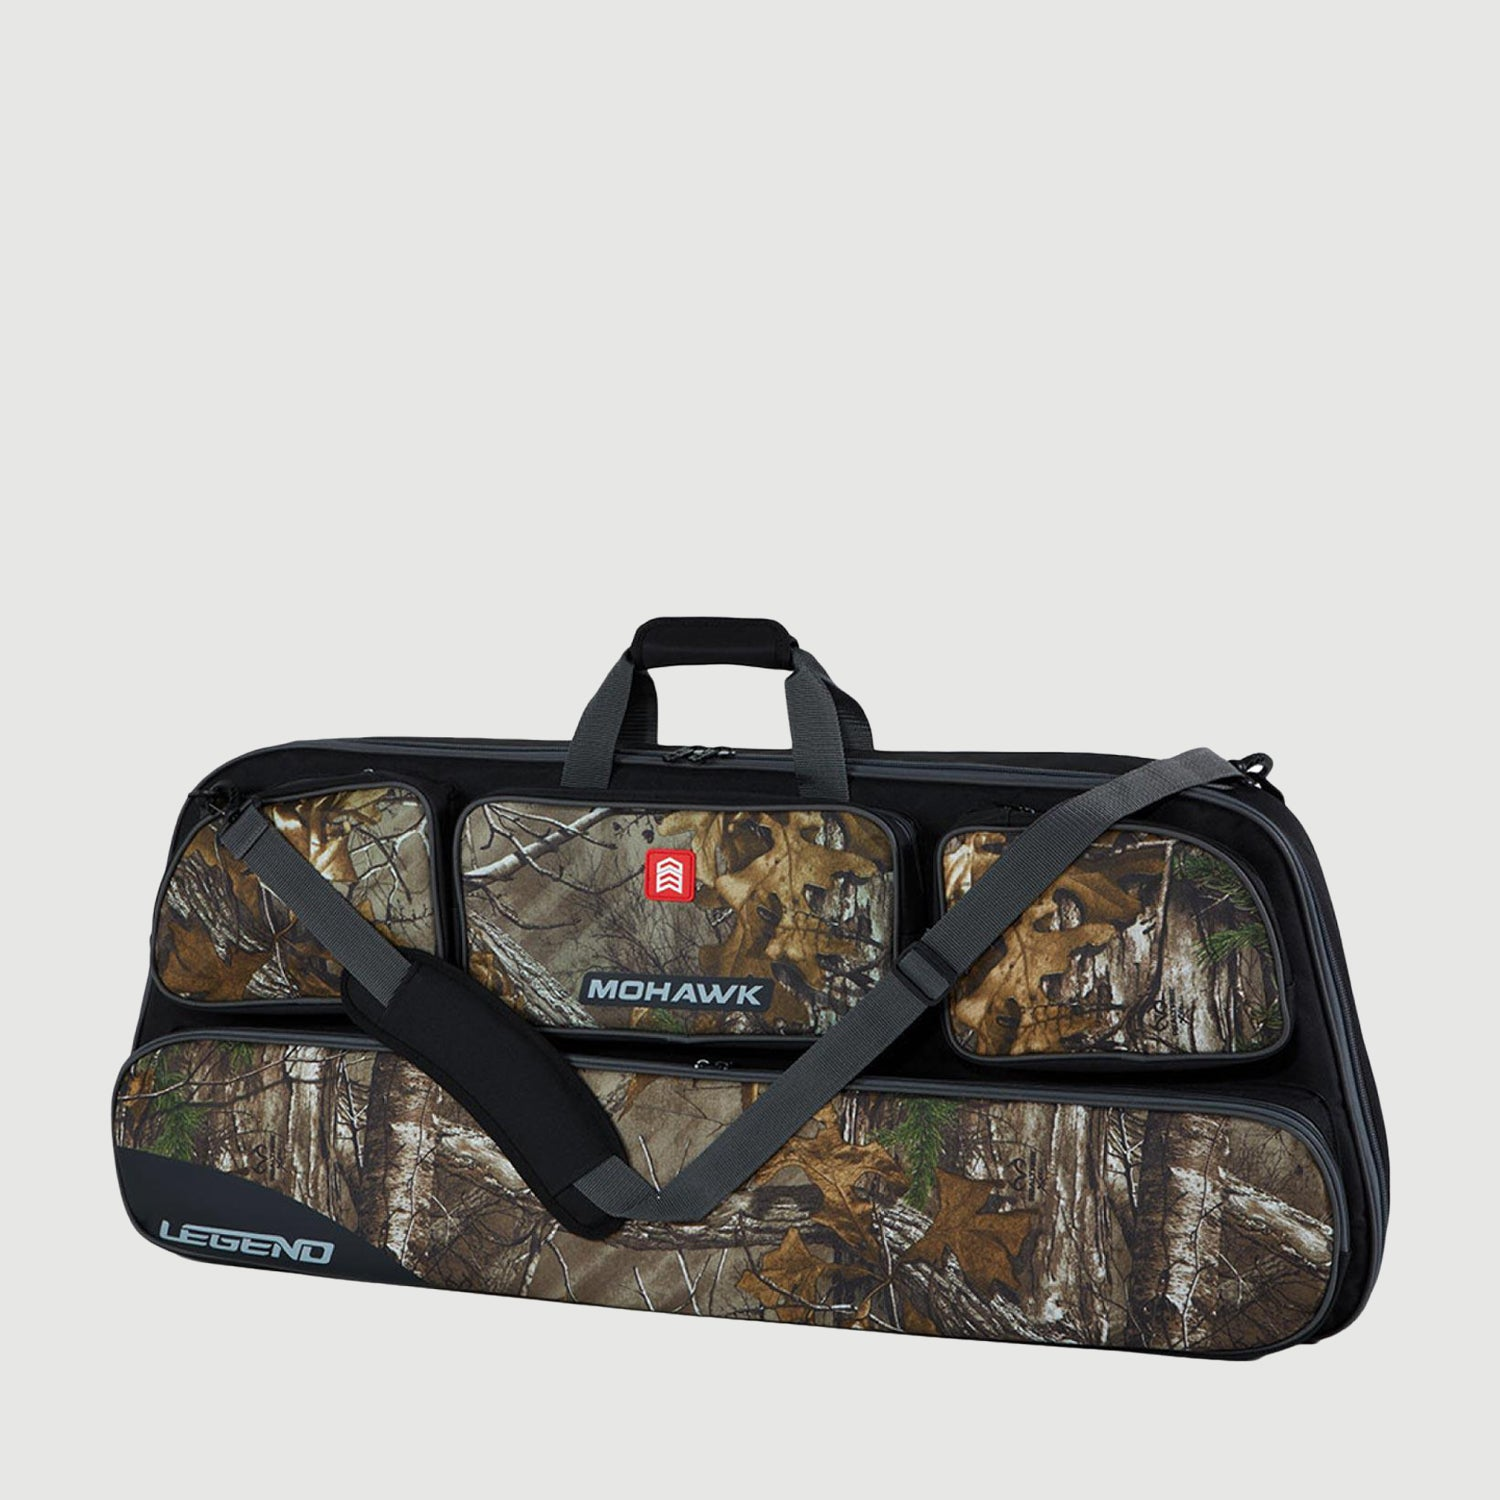 Legend Mohawk Bow Case & Backpack W Shoulder Straps-Legend Outdoor Industries